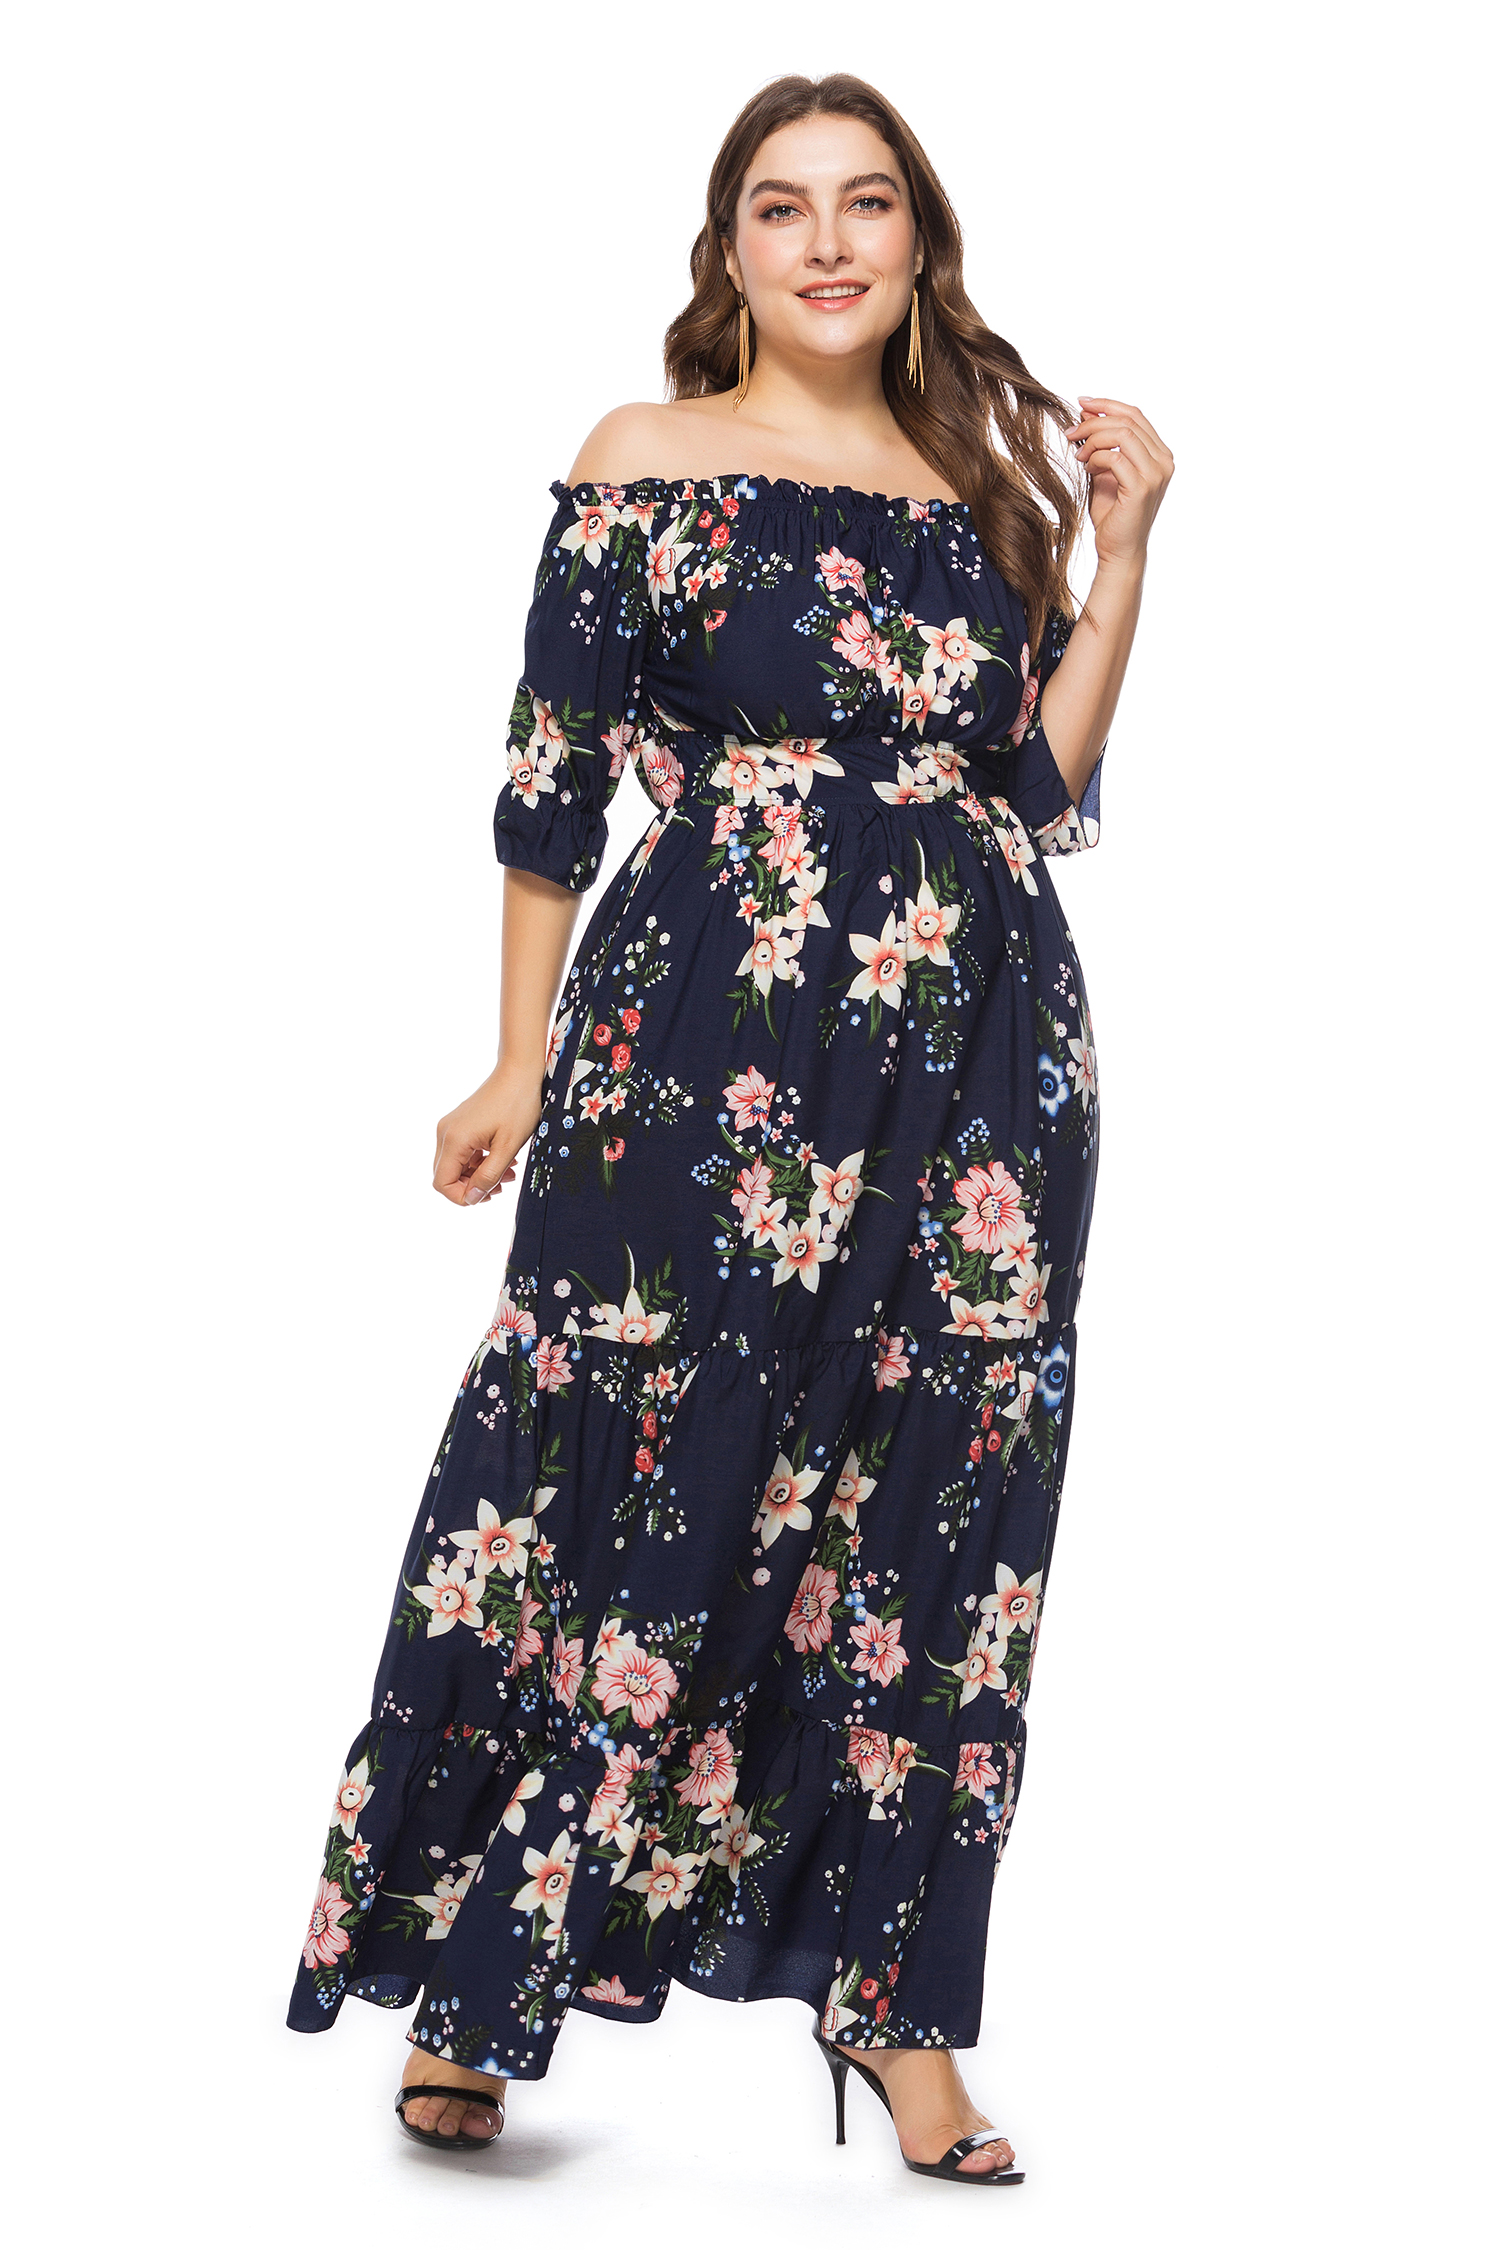 US$ 13.41 - Plus Size Off Shoulder Floral Maxi Dress - www.global ...